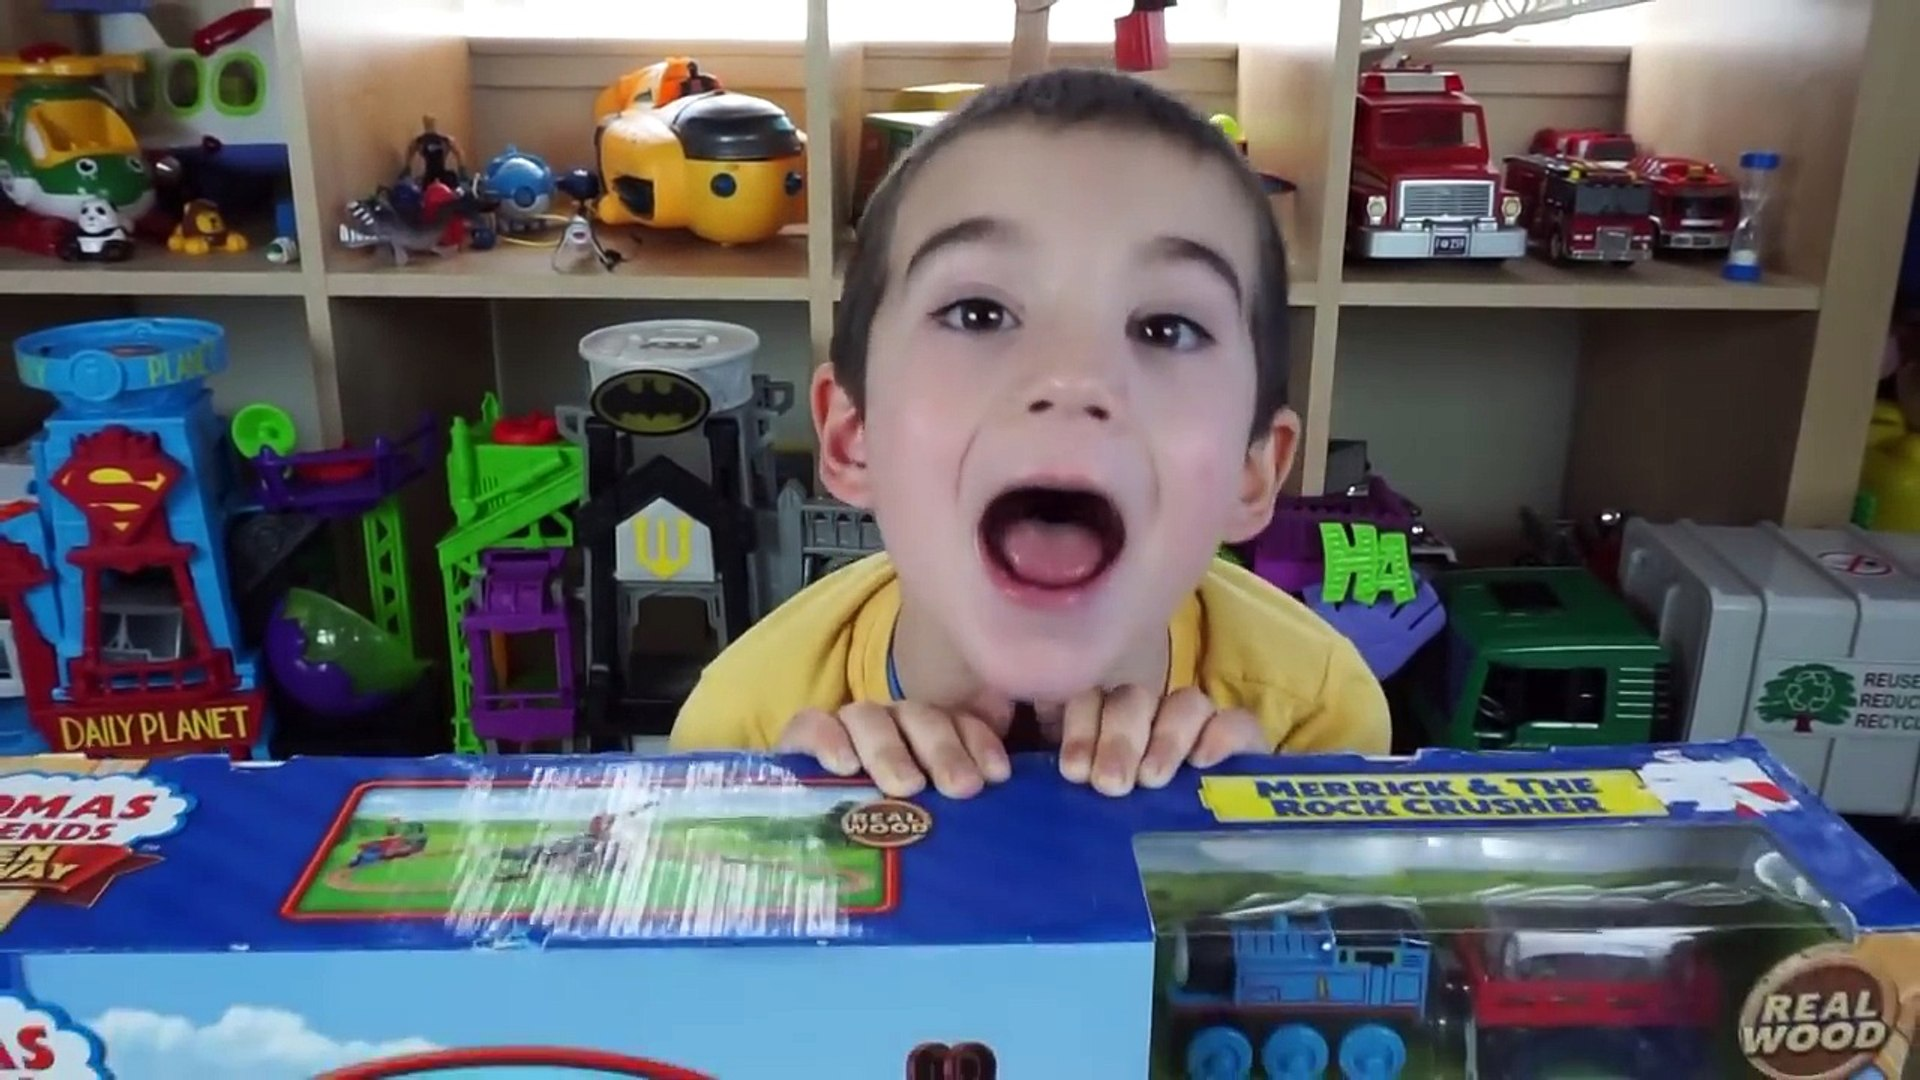 Thomas and Friends Toy Trains for Kids - Toy Unboxing - Wooden Railway Merrick & Rock Crusher